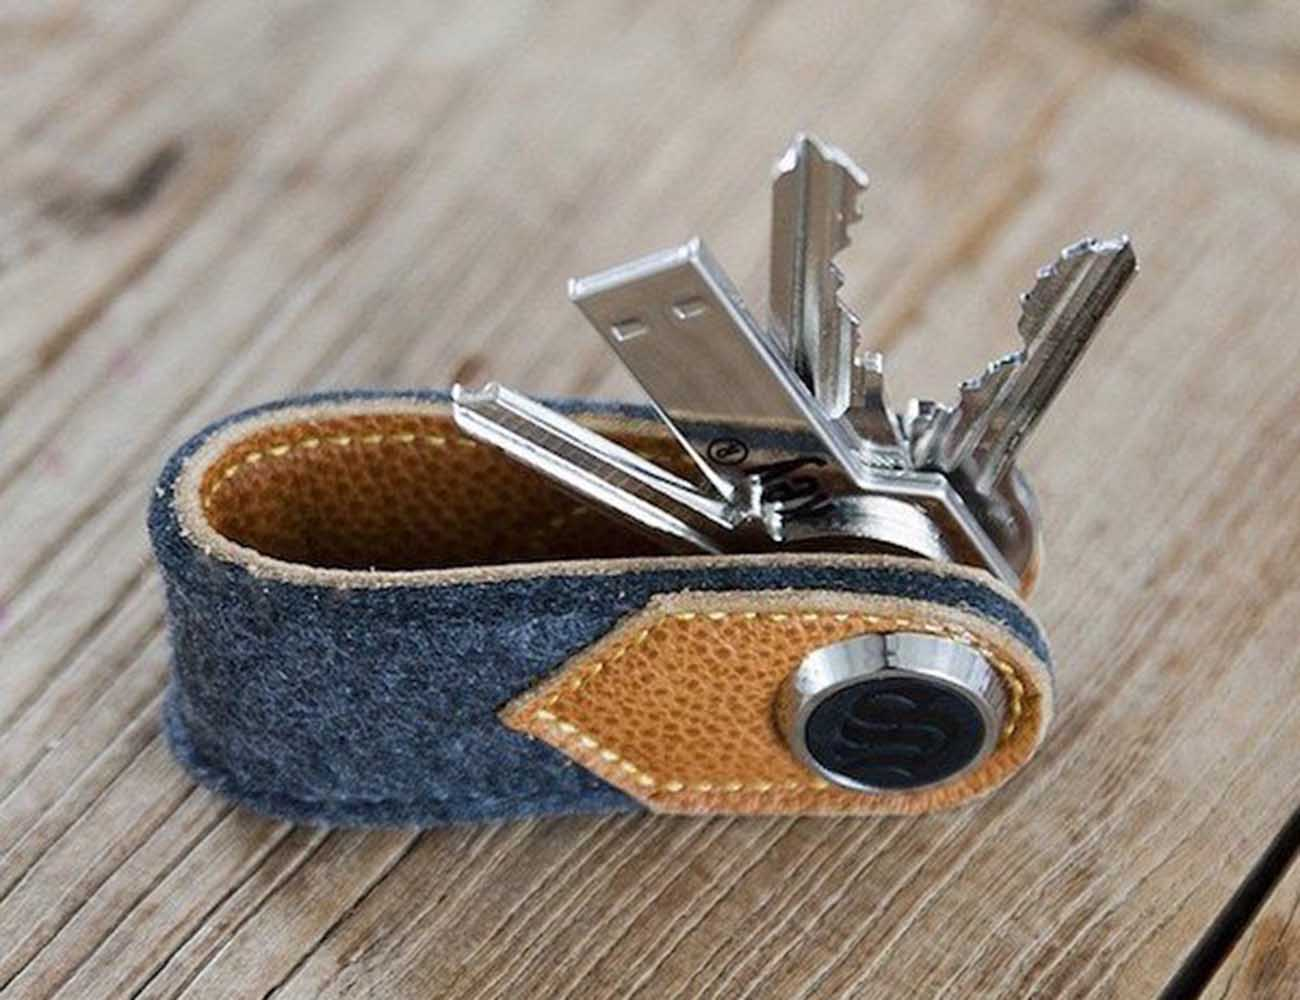 Brown Leather and Wool Felt Key Organizer by S-Key